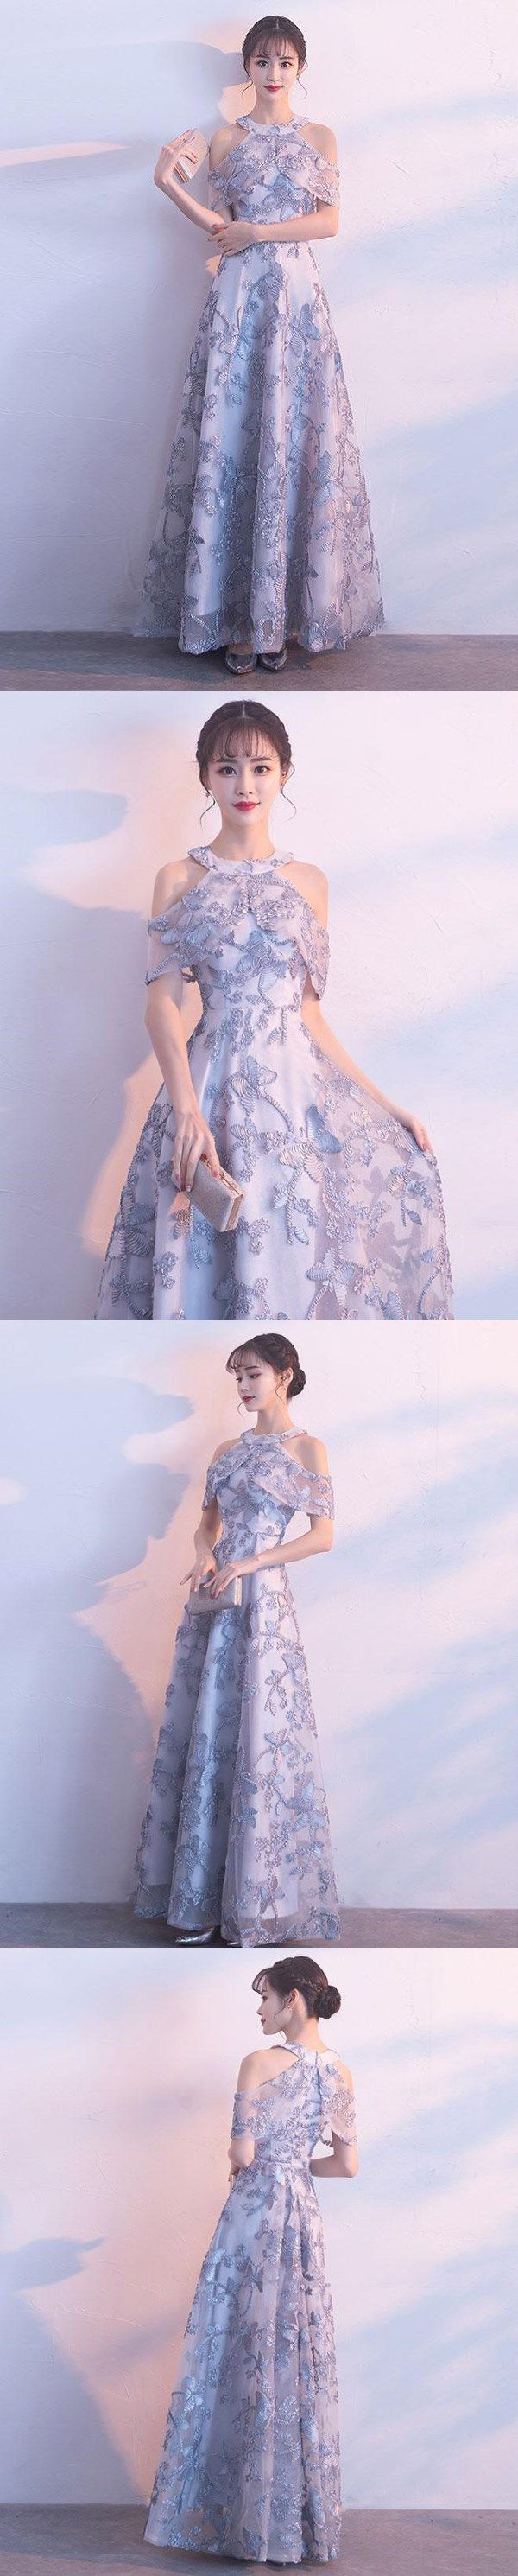 Lace prom dresses a line halter floorlength tulle long chic prom